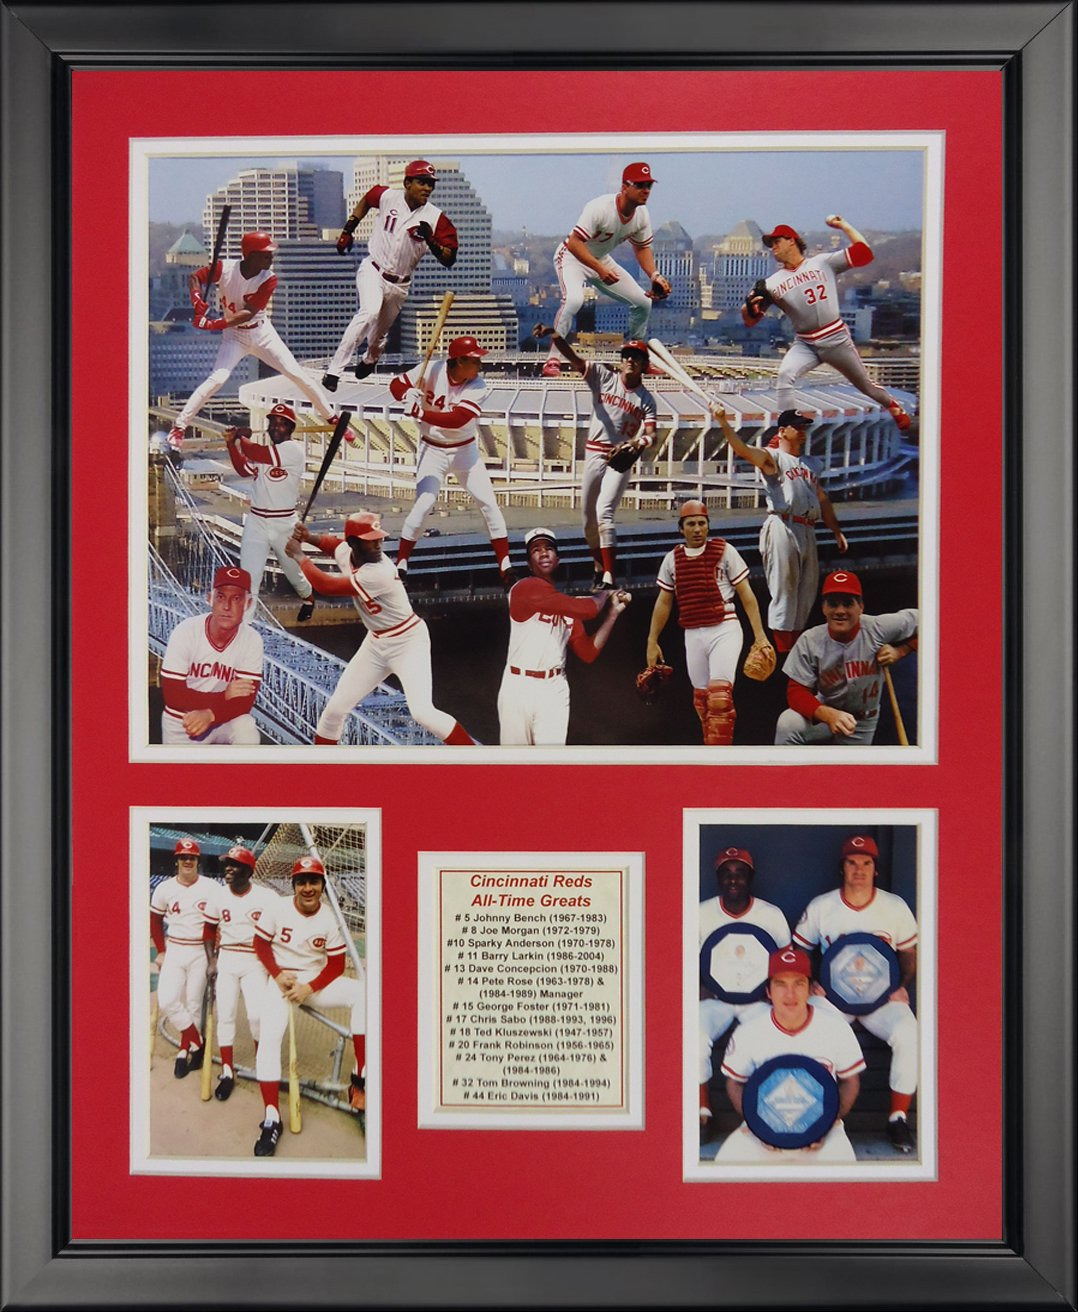 Legends Never Die MLB All-Time Greats Framed Photo Collage